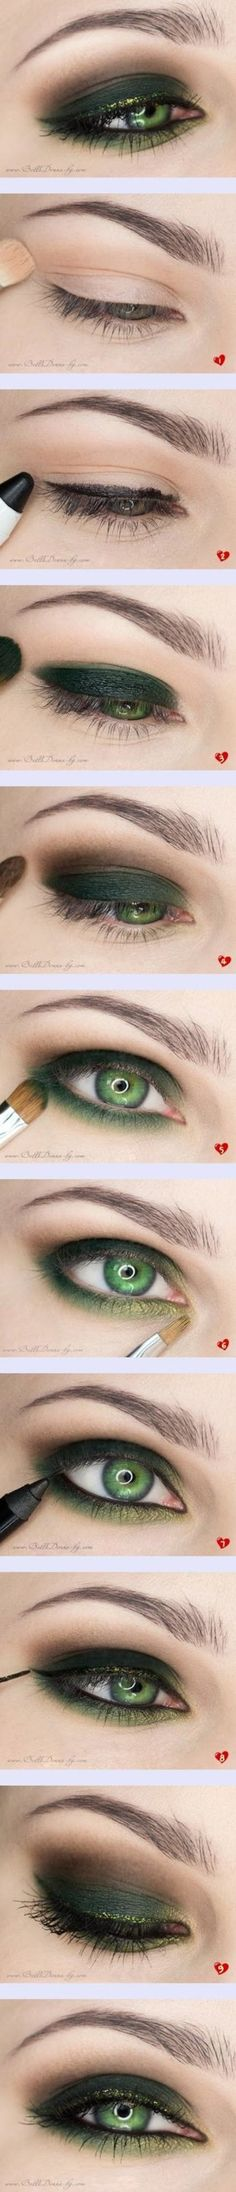 Easy to follow #Step-by-Step #Tutorial for a #Green #Smokey #Eye!